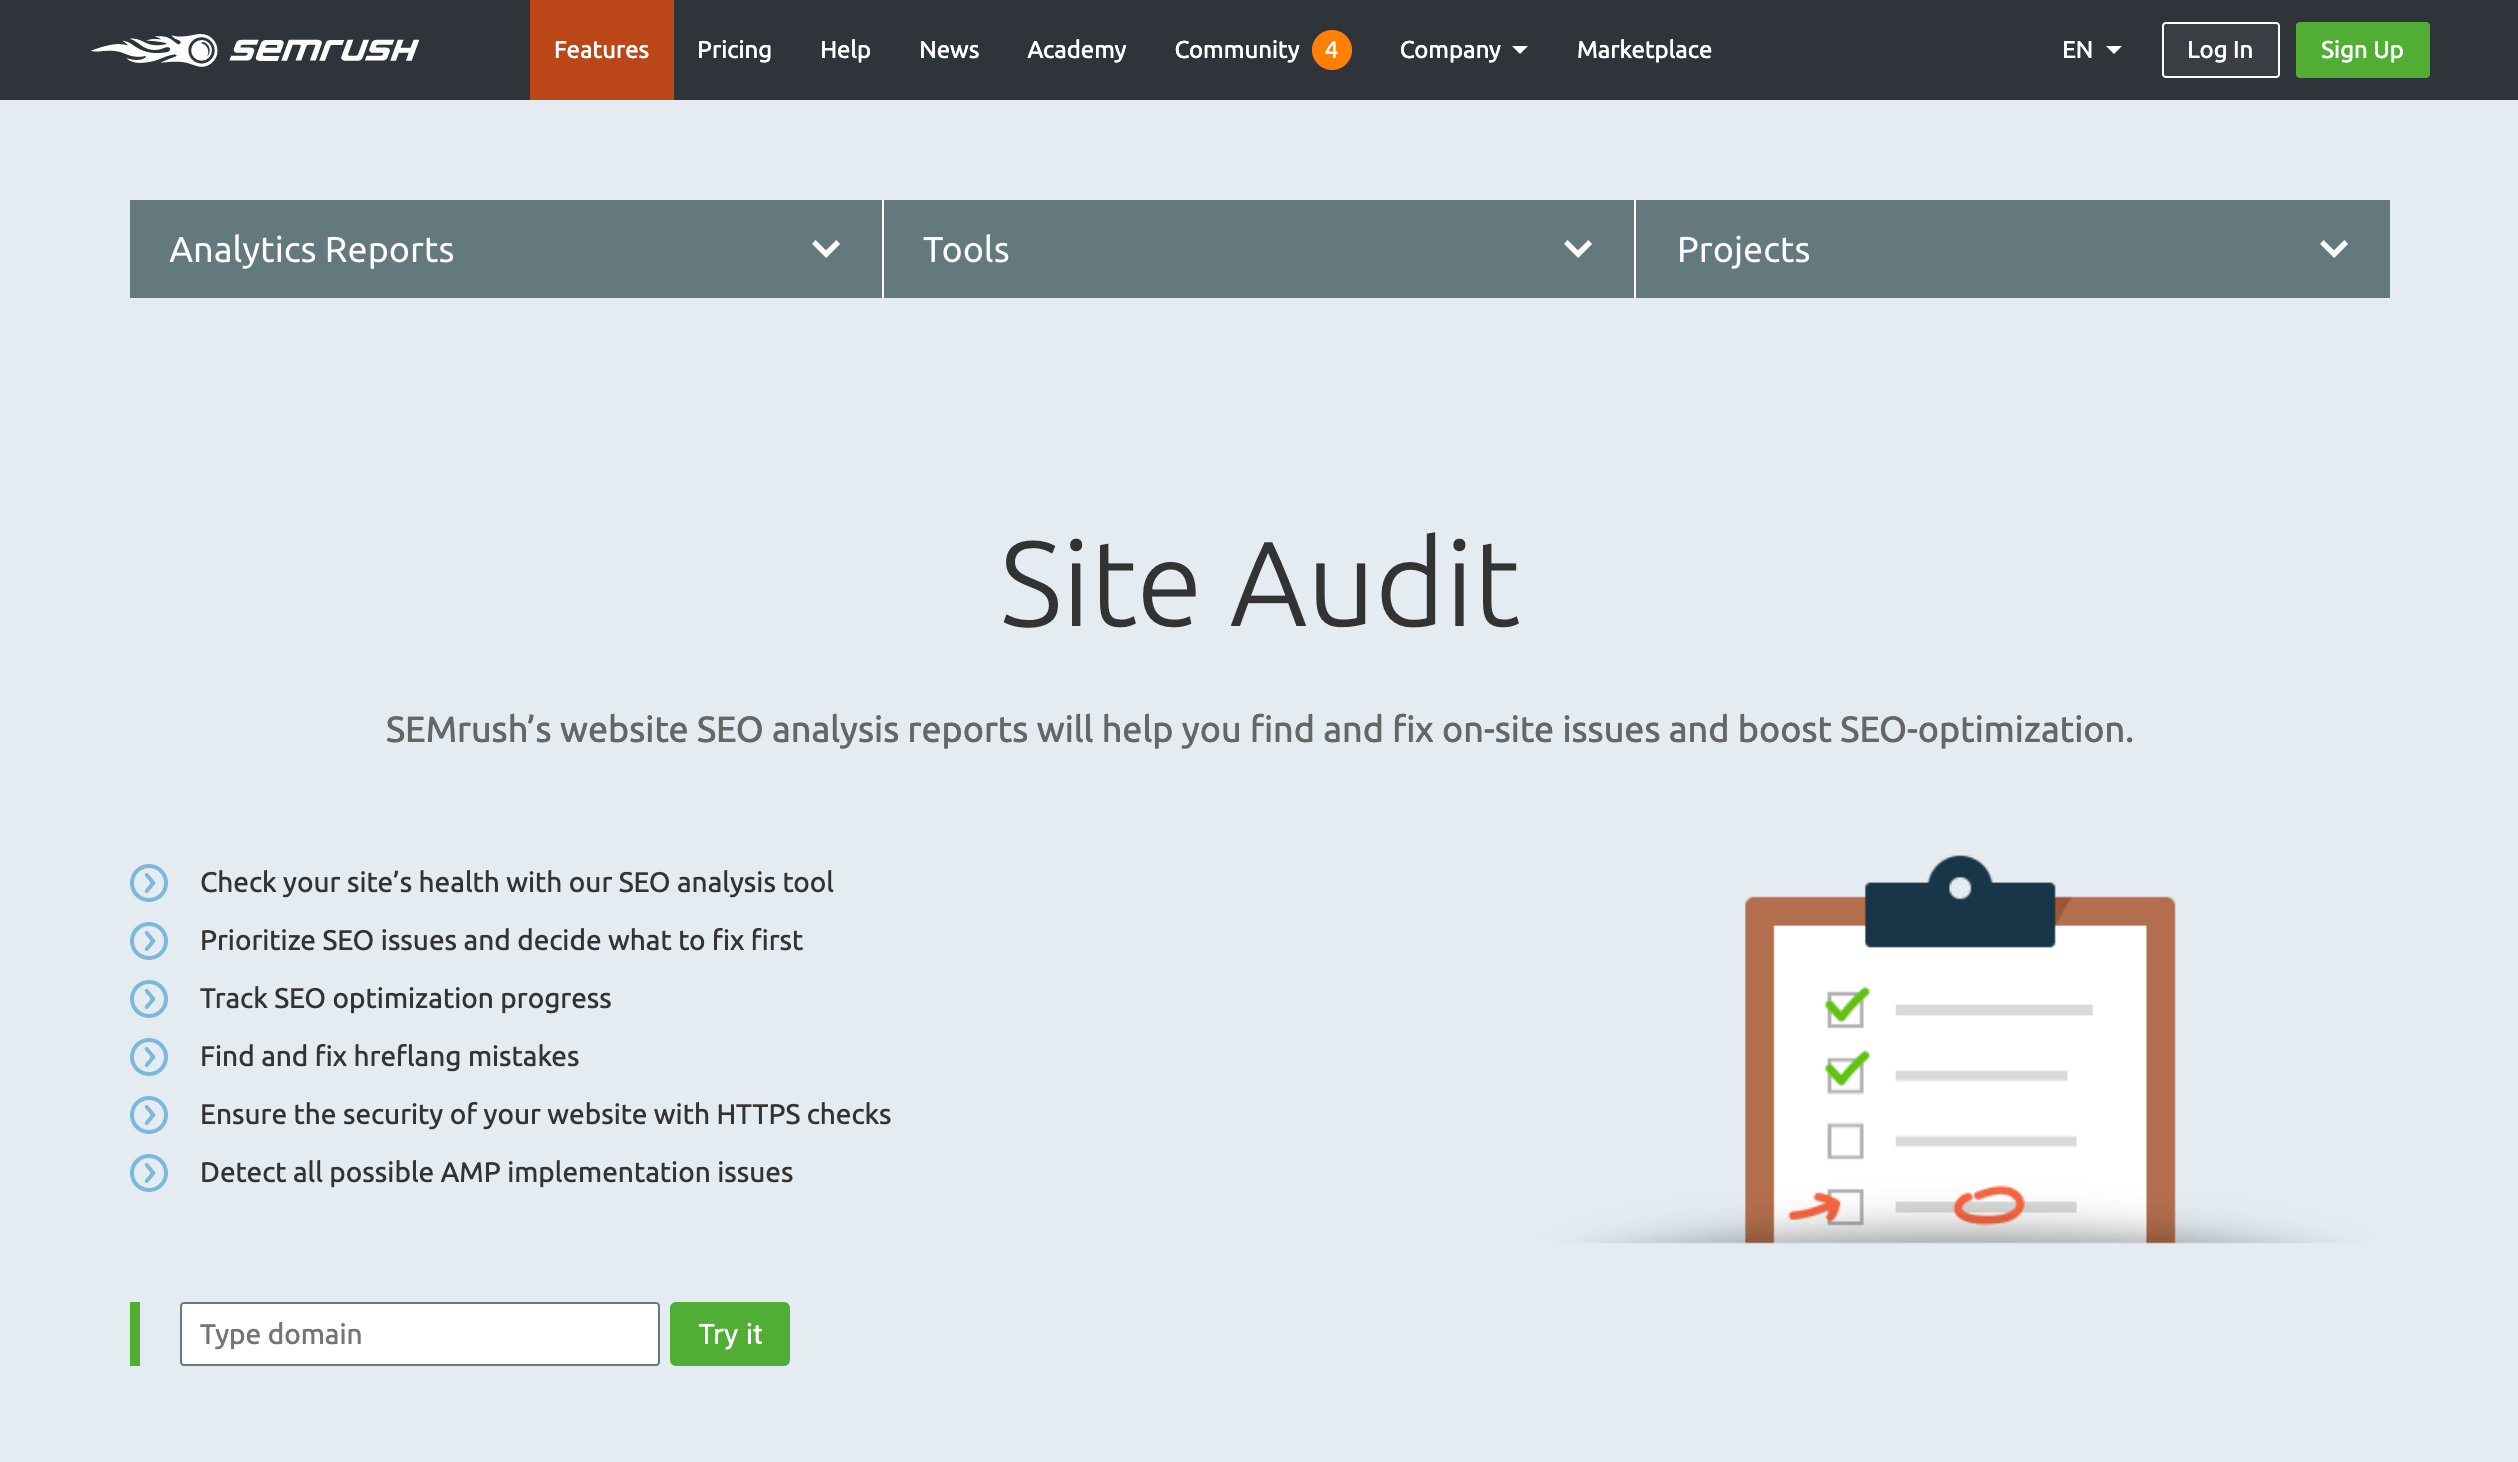 The SEMRush Site Audit tool.